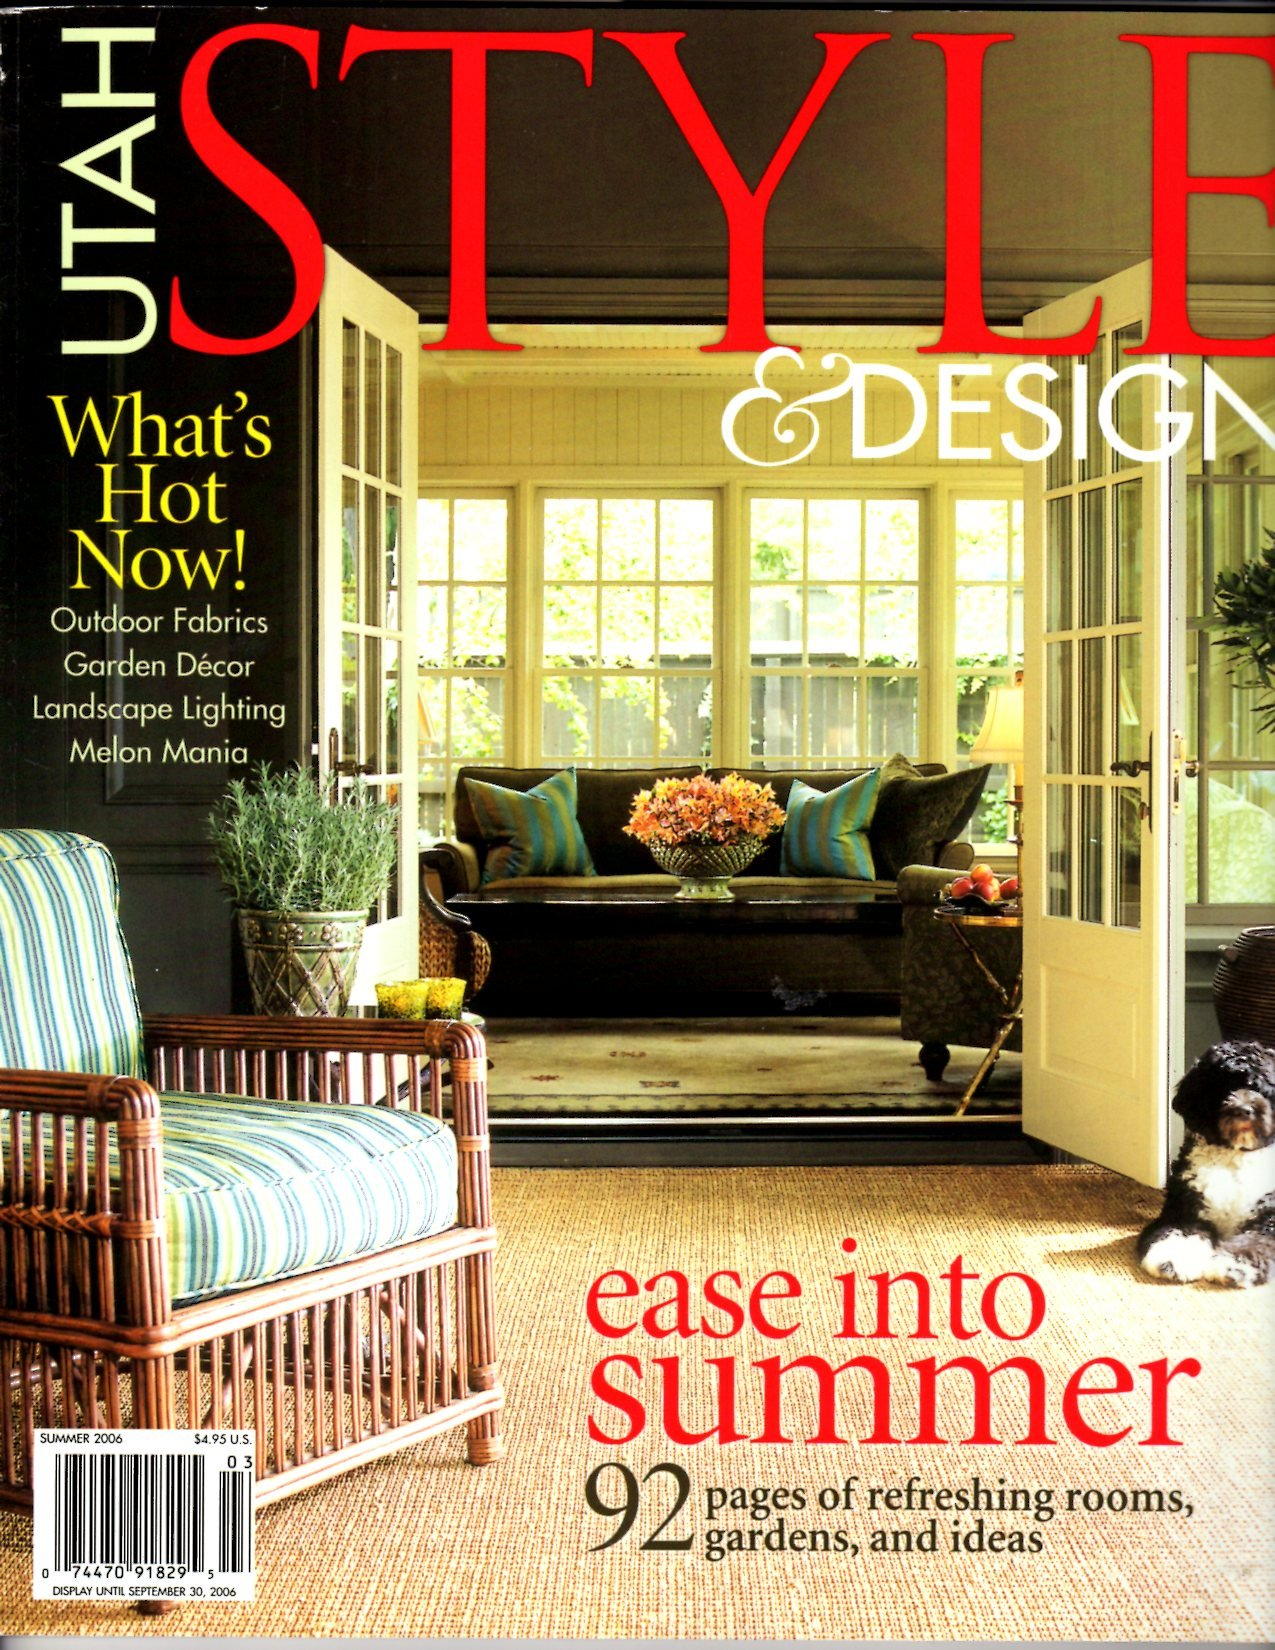 Utah Style And Design.Utah Style And Design Brad Mee Outdoor Fabrics Garden